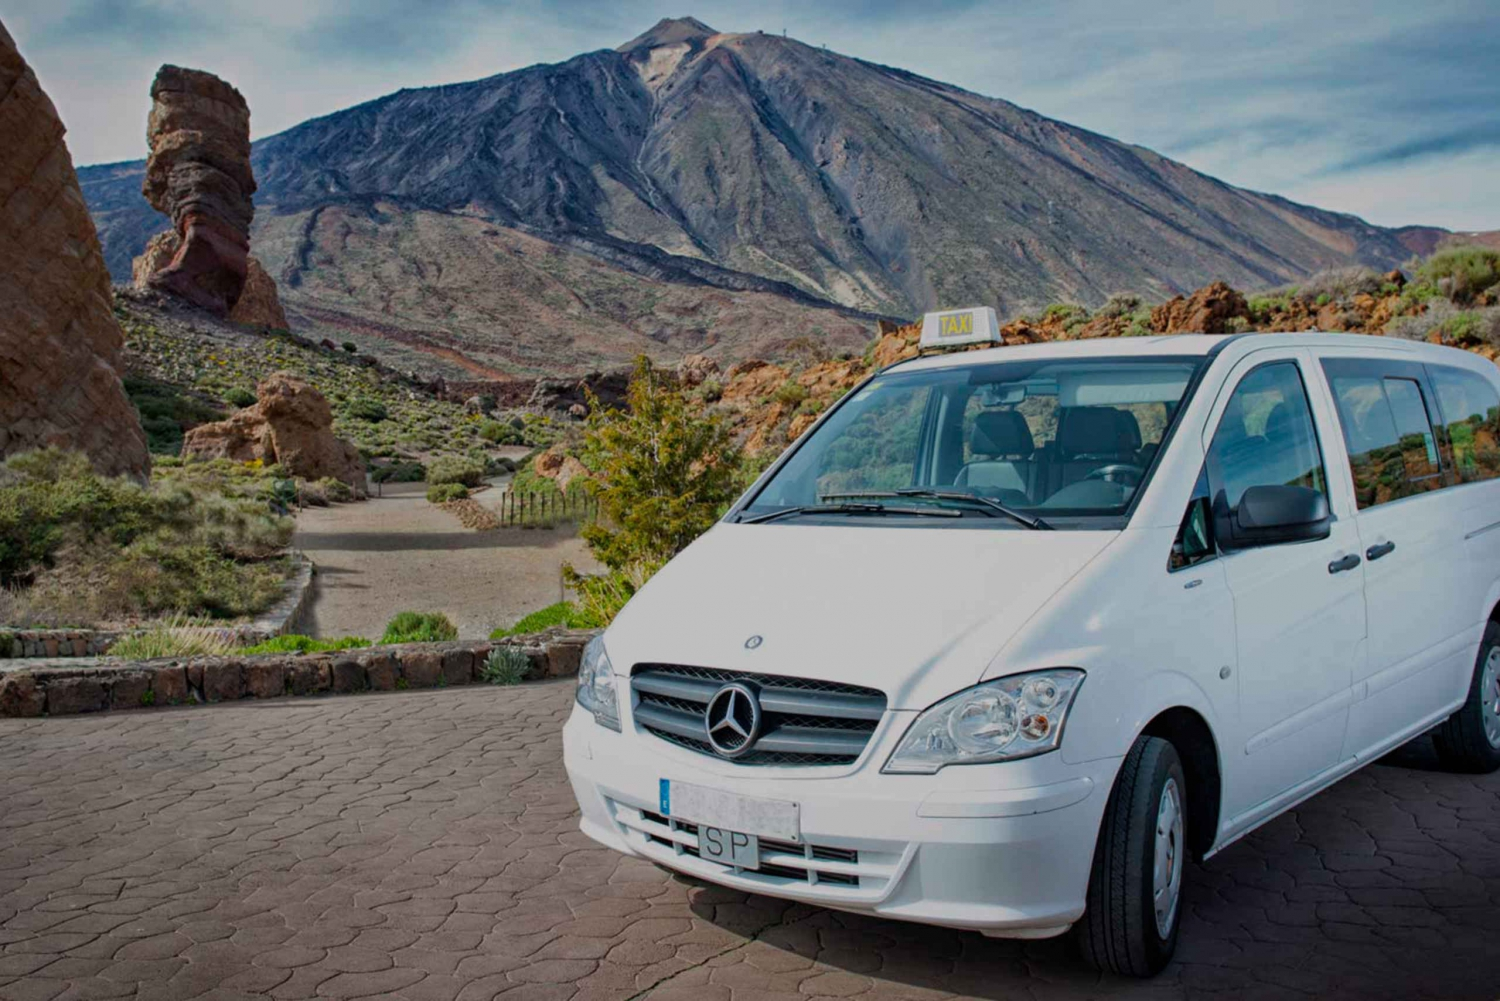 North Island Hotels to Tenerife South Airport Transfer